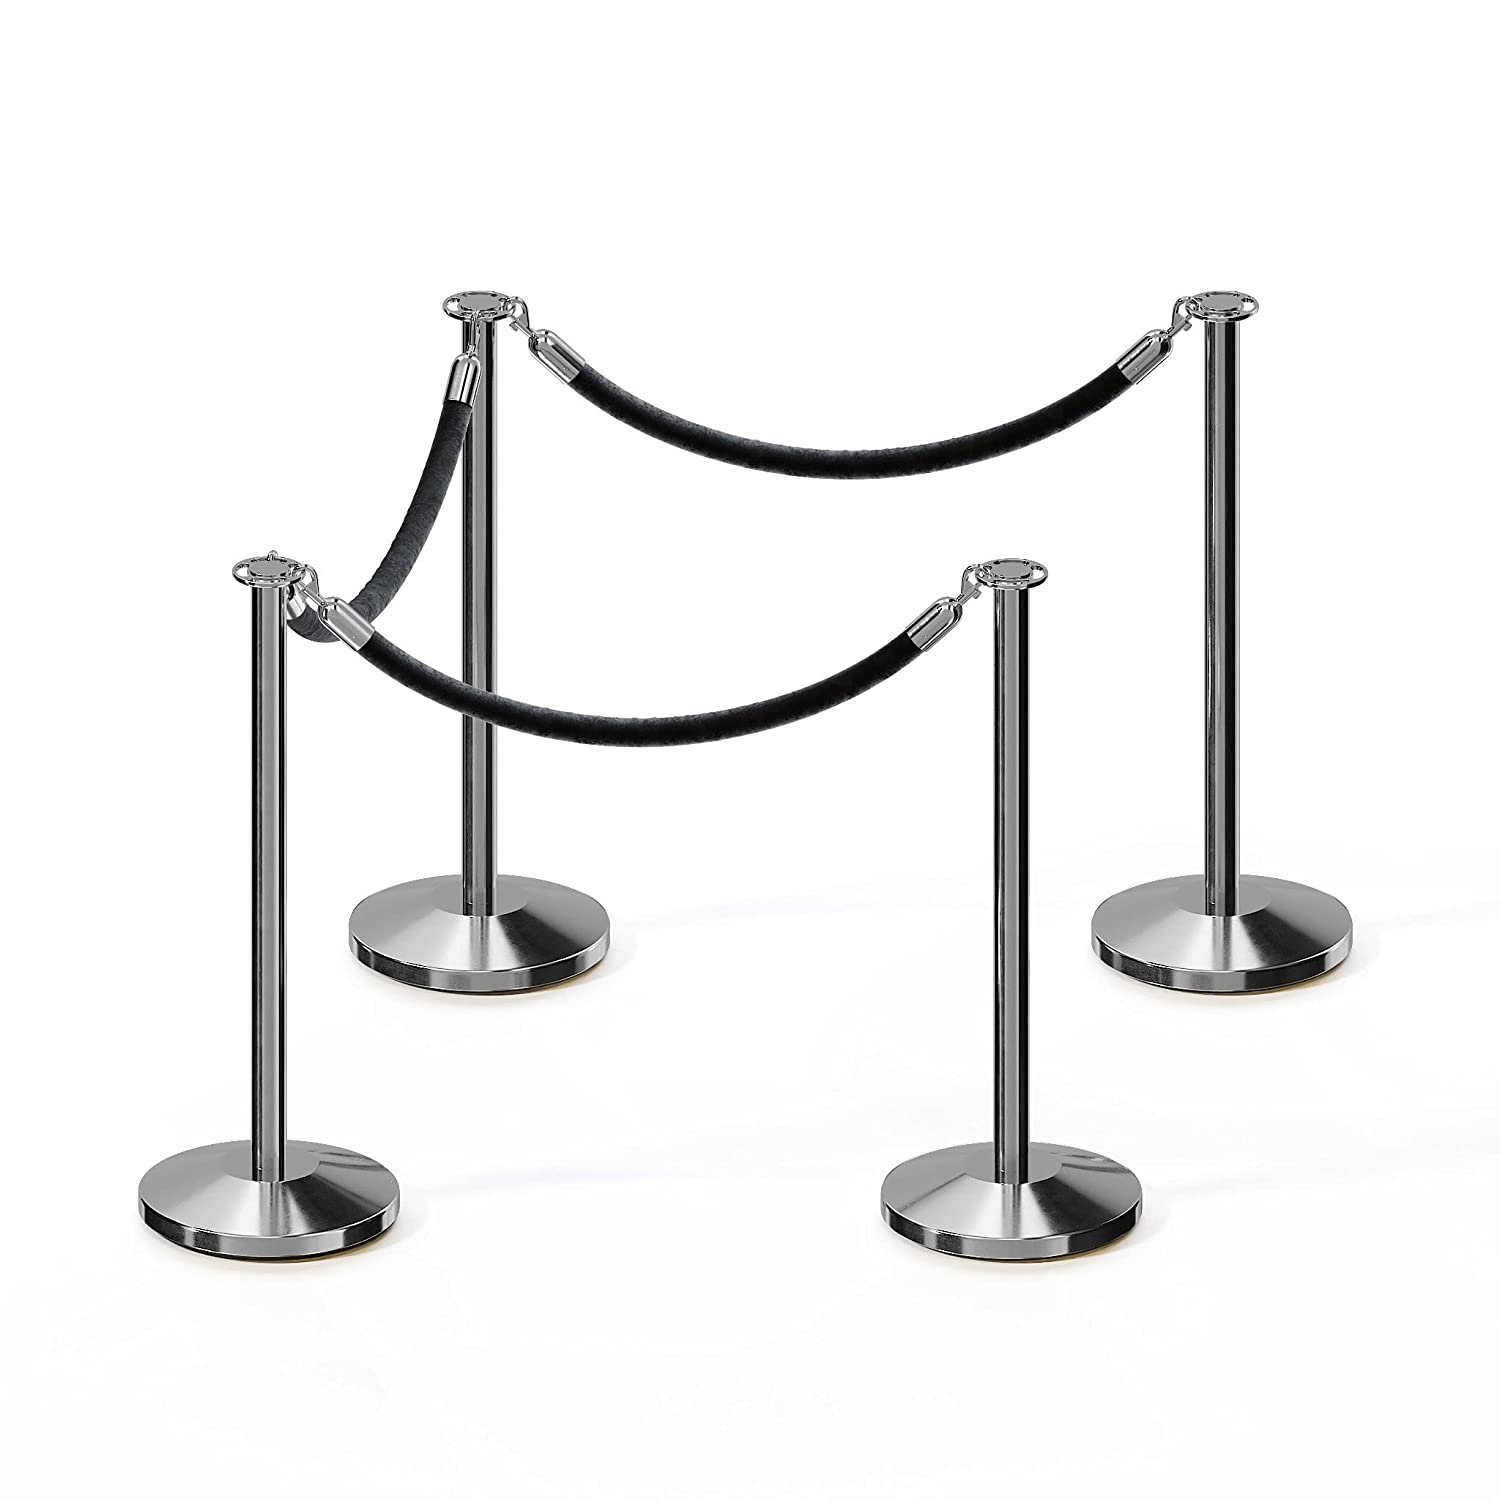 CCW Post and Rope Deluxe Stanchion Kit Steel Max 45% OFF with Stainless 4 Polished